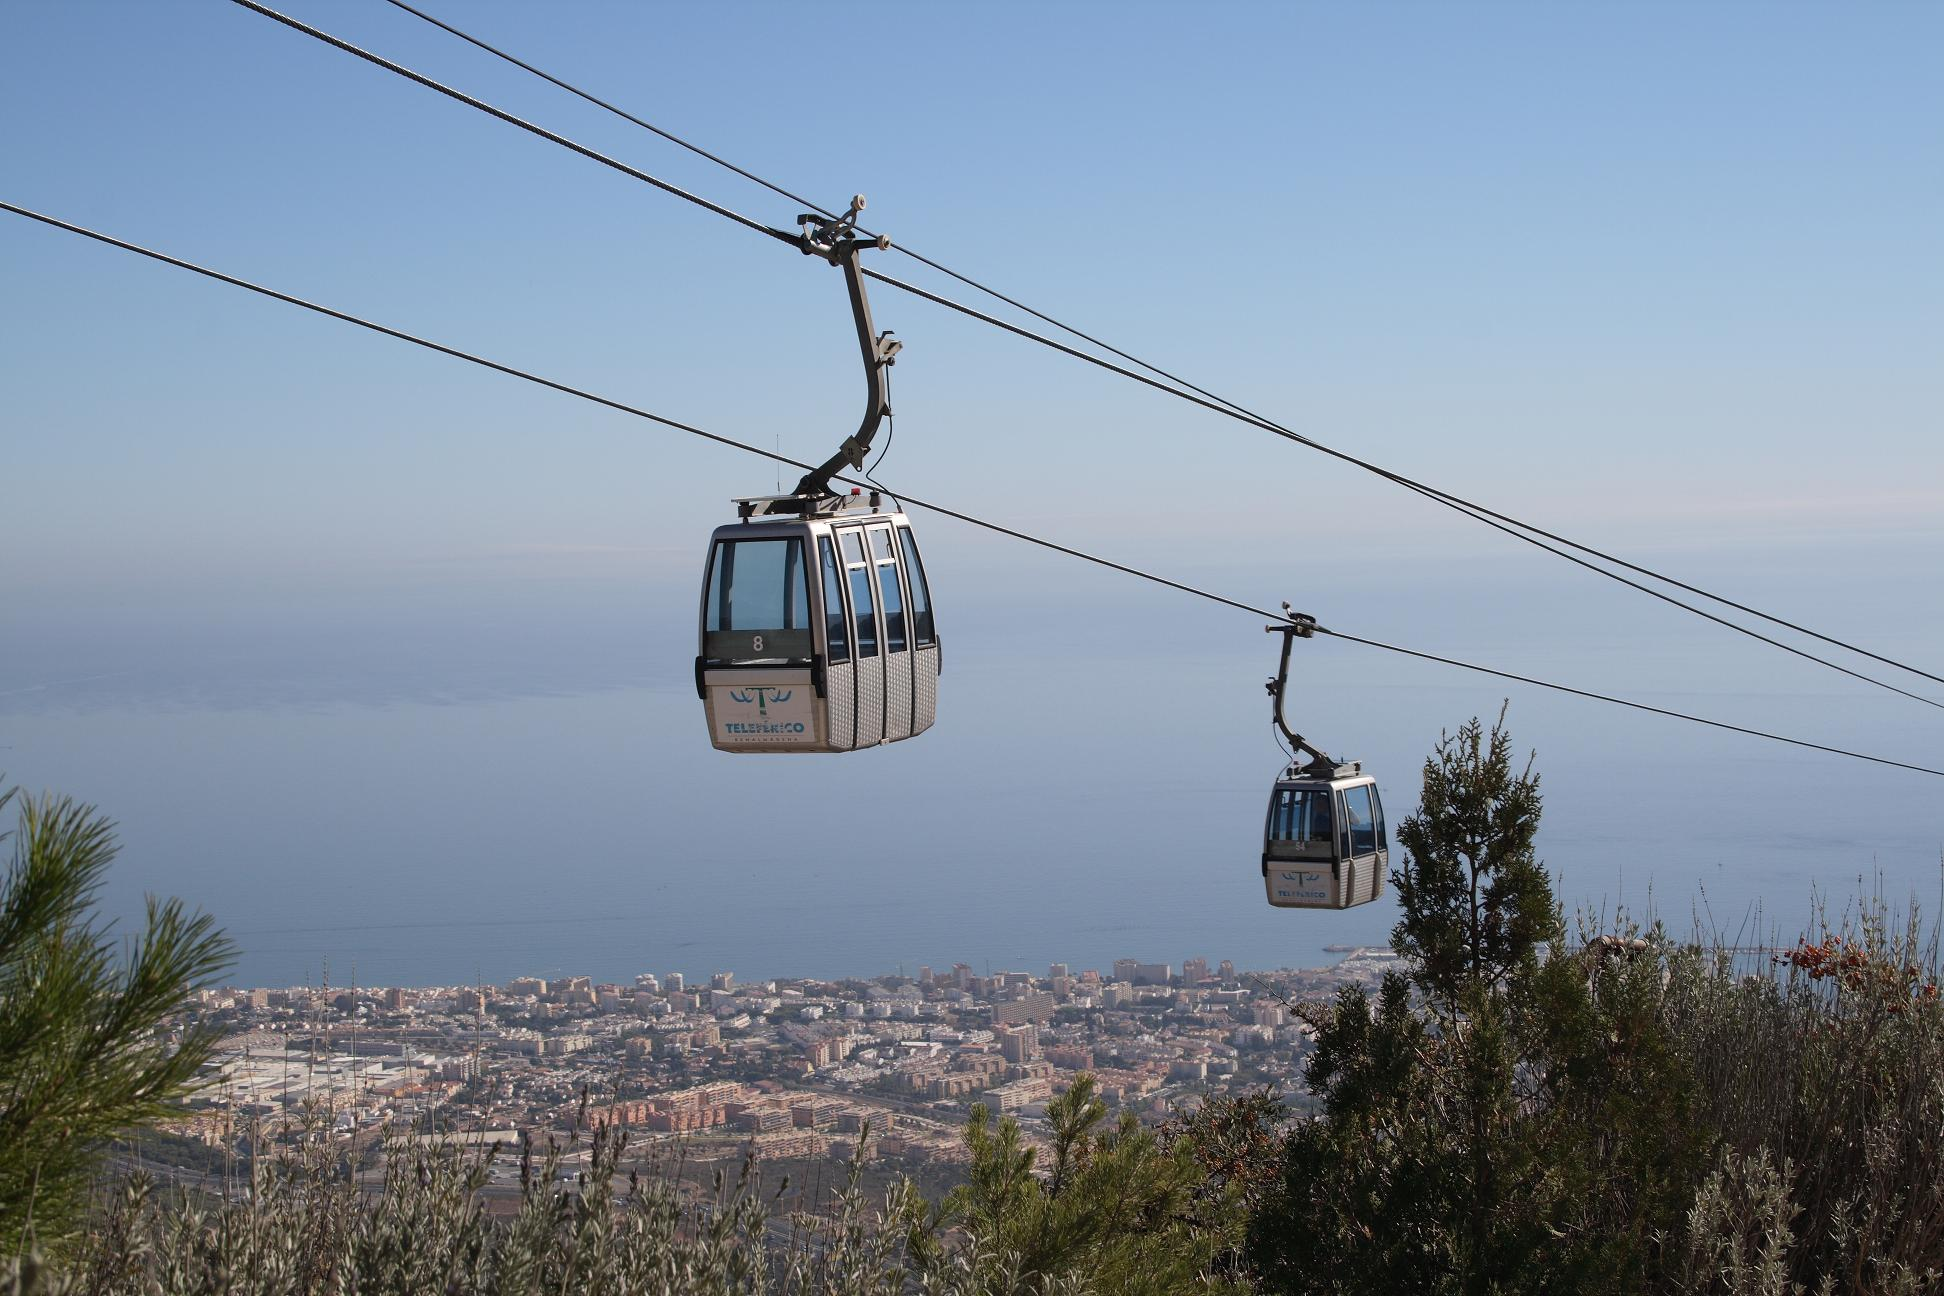 End of season at the Benalmádena Cable Car